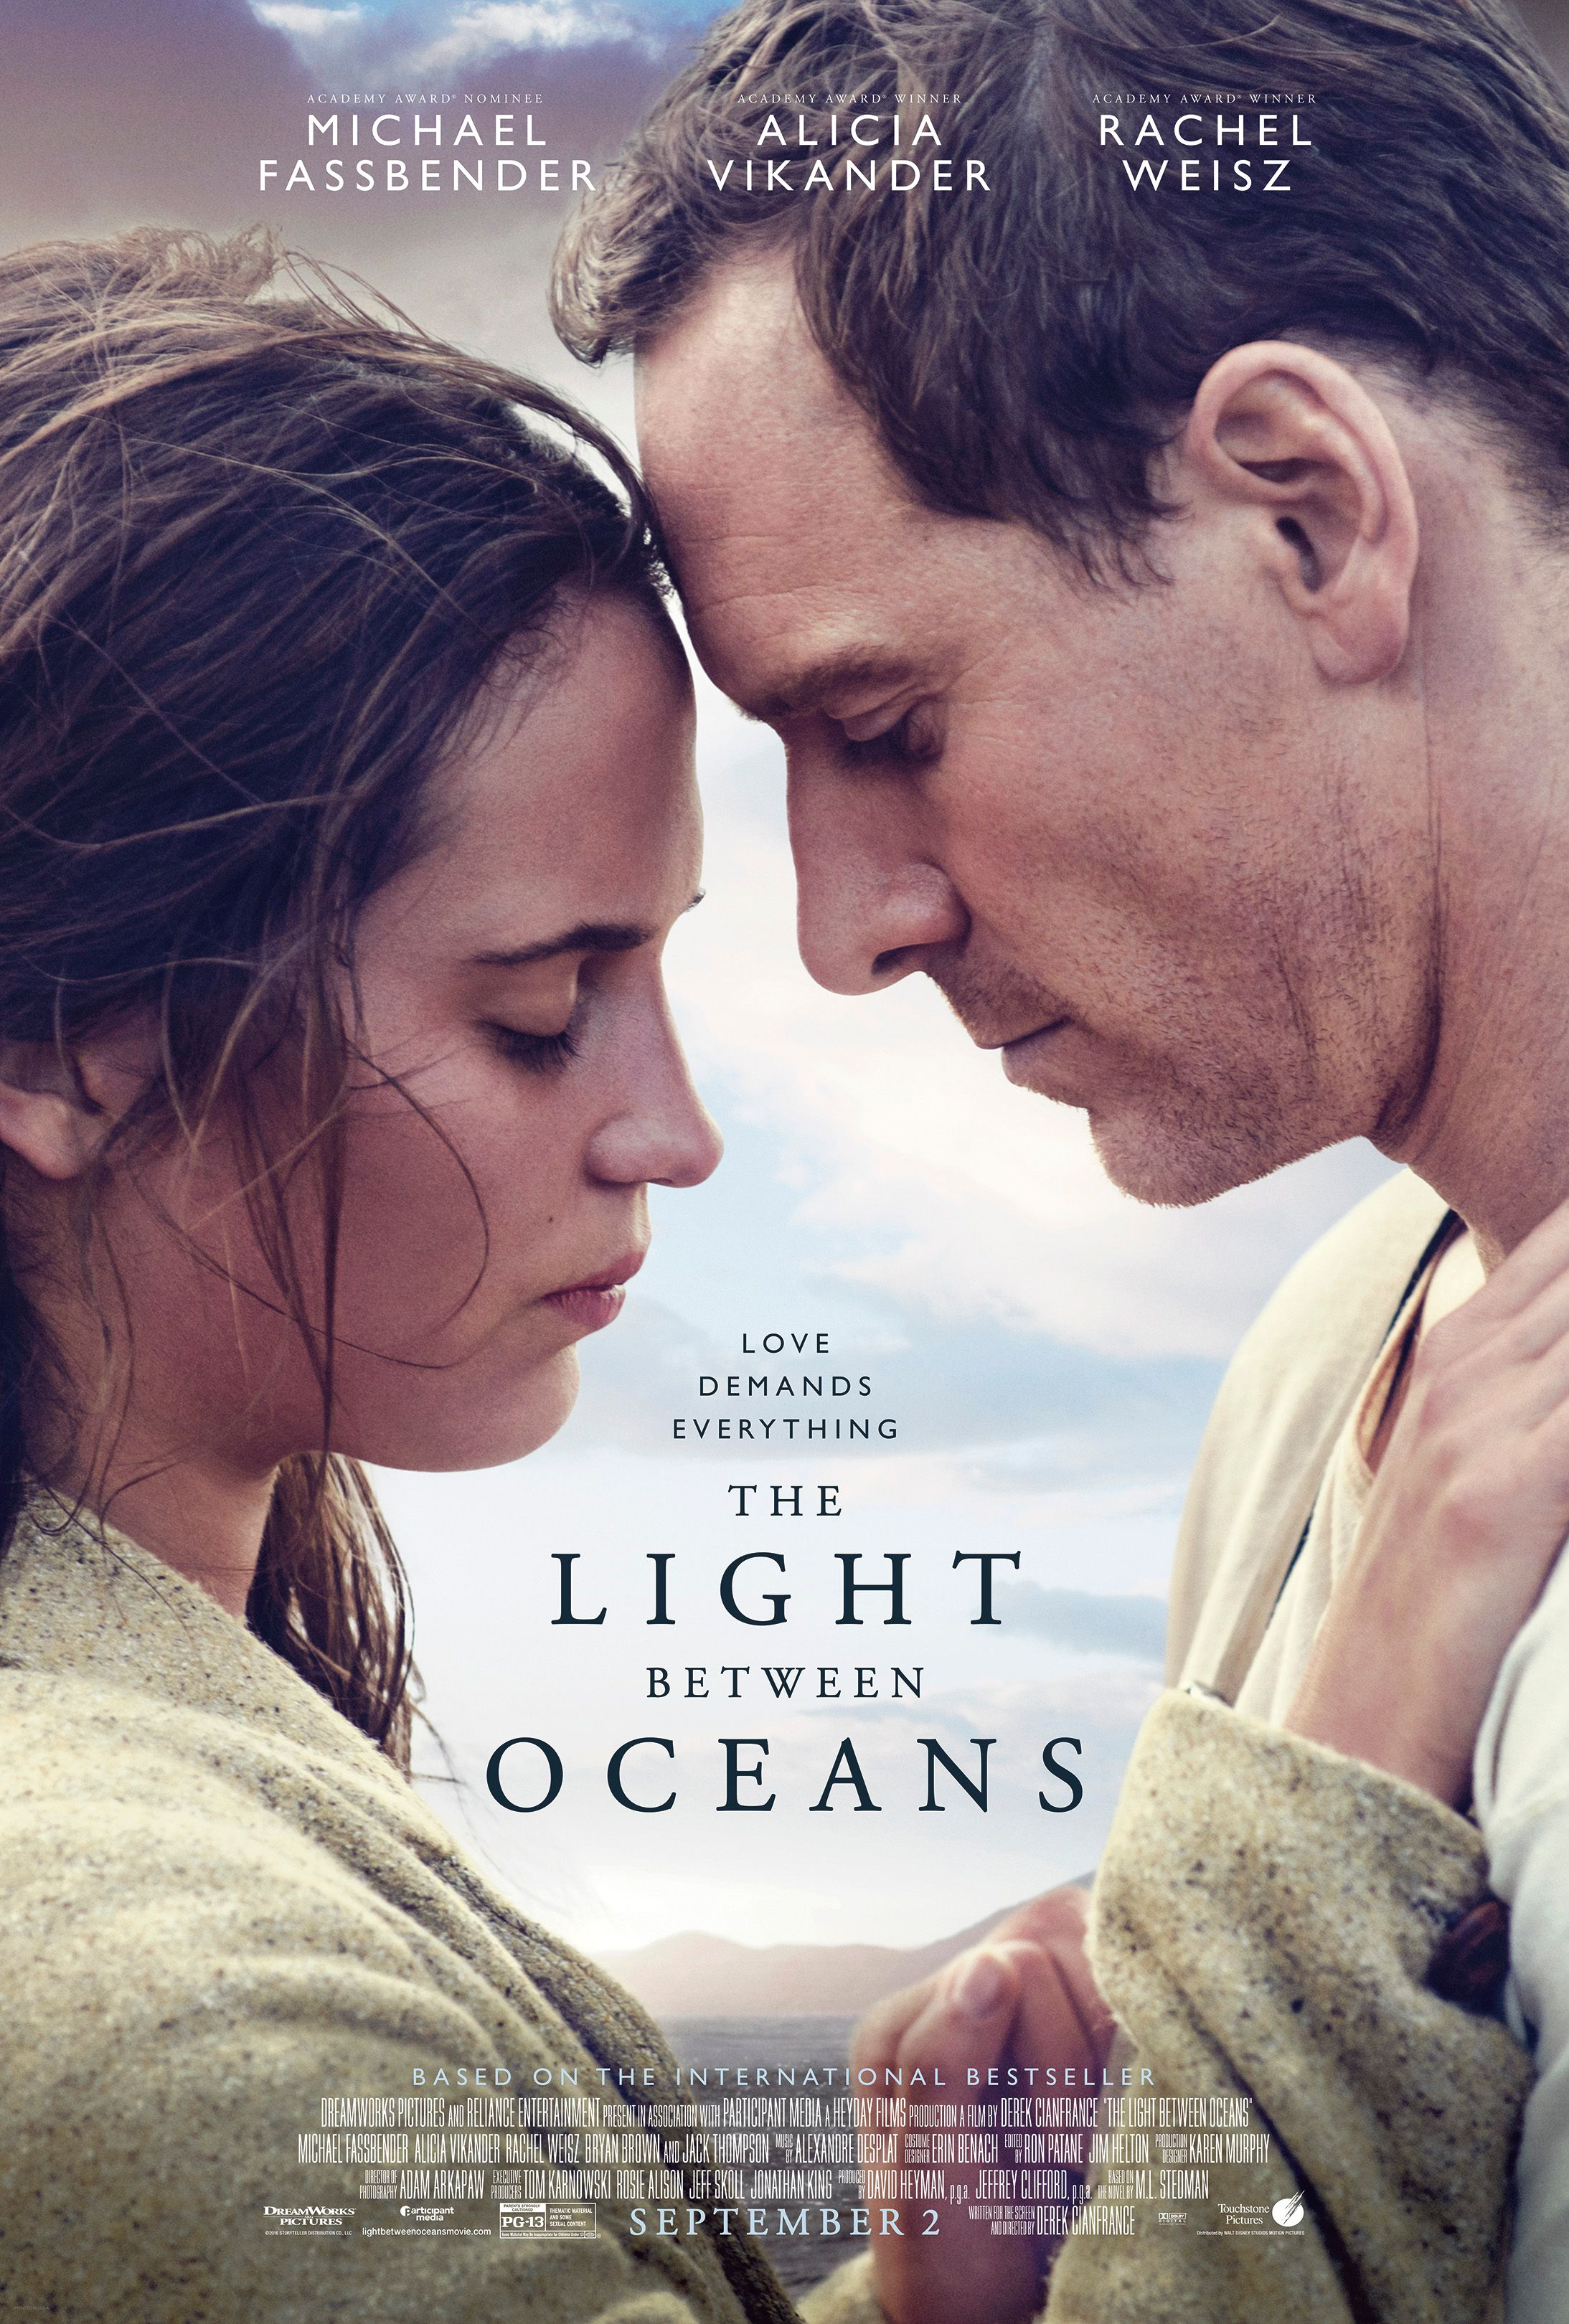 Michael Fassbender on Light Between Oceans, Alien: Covenant Scare